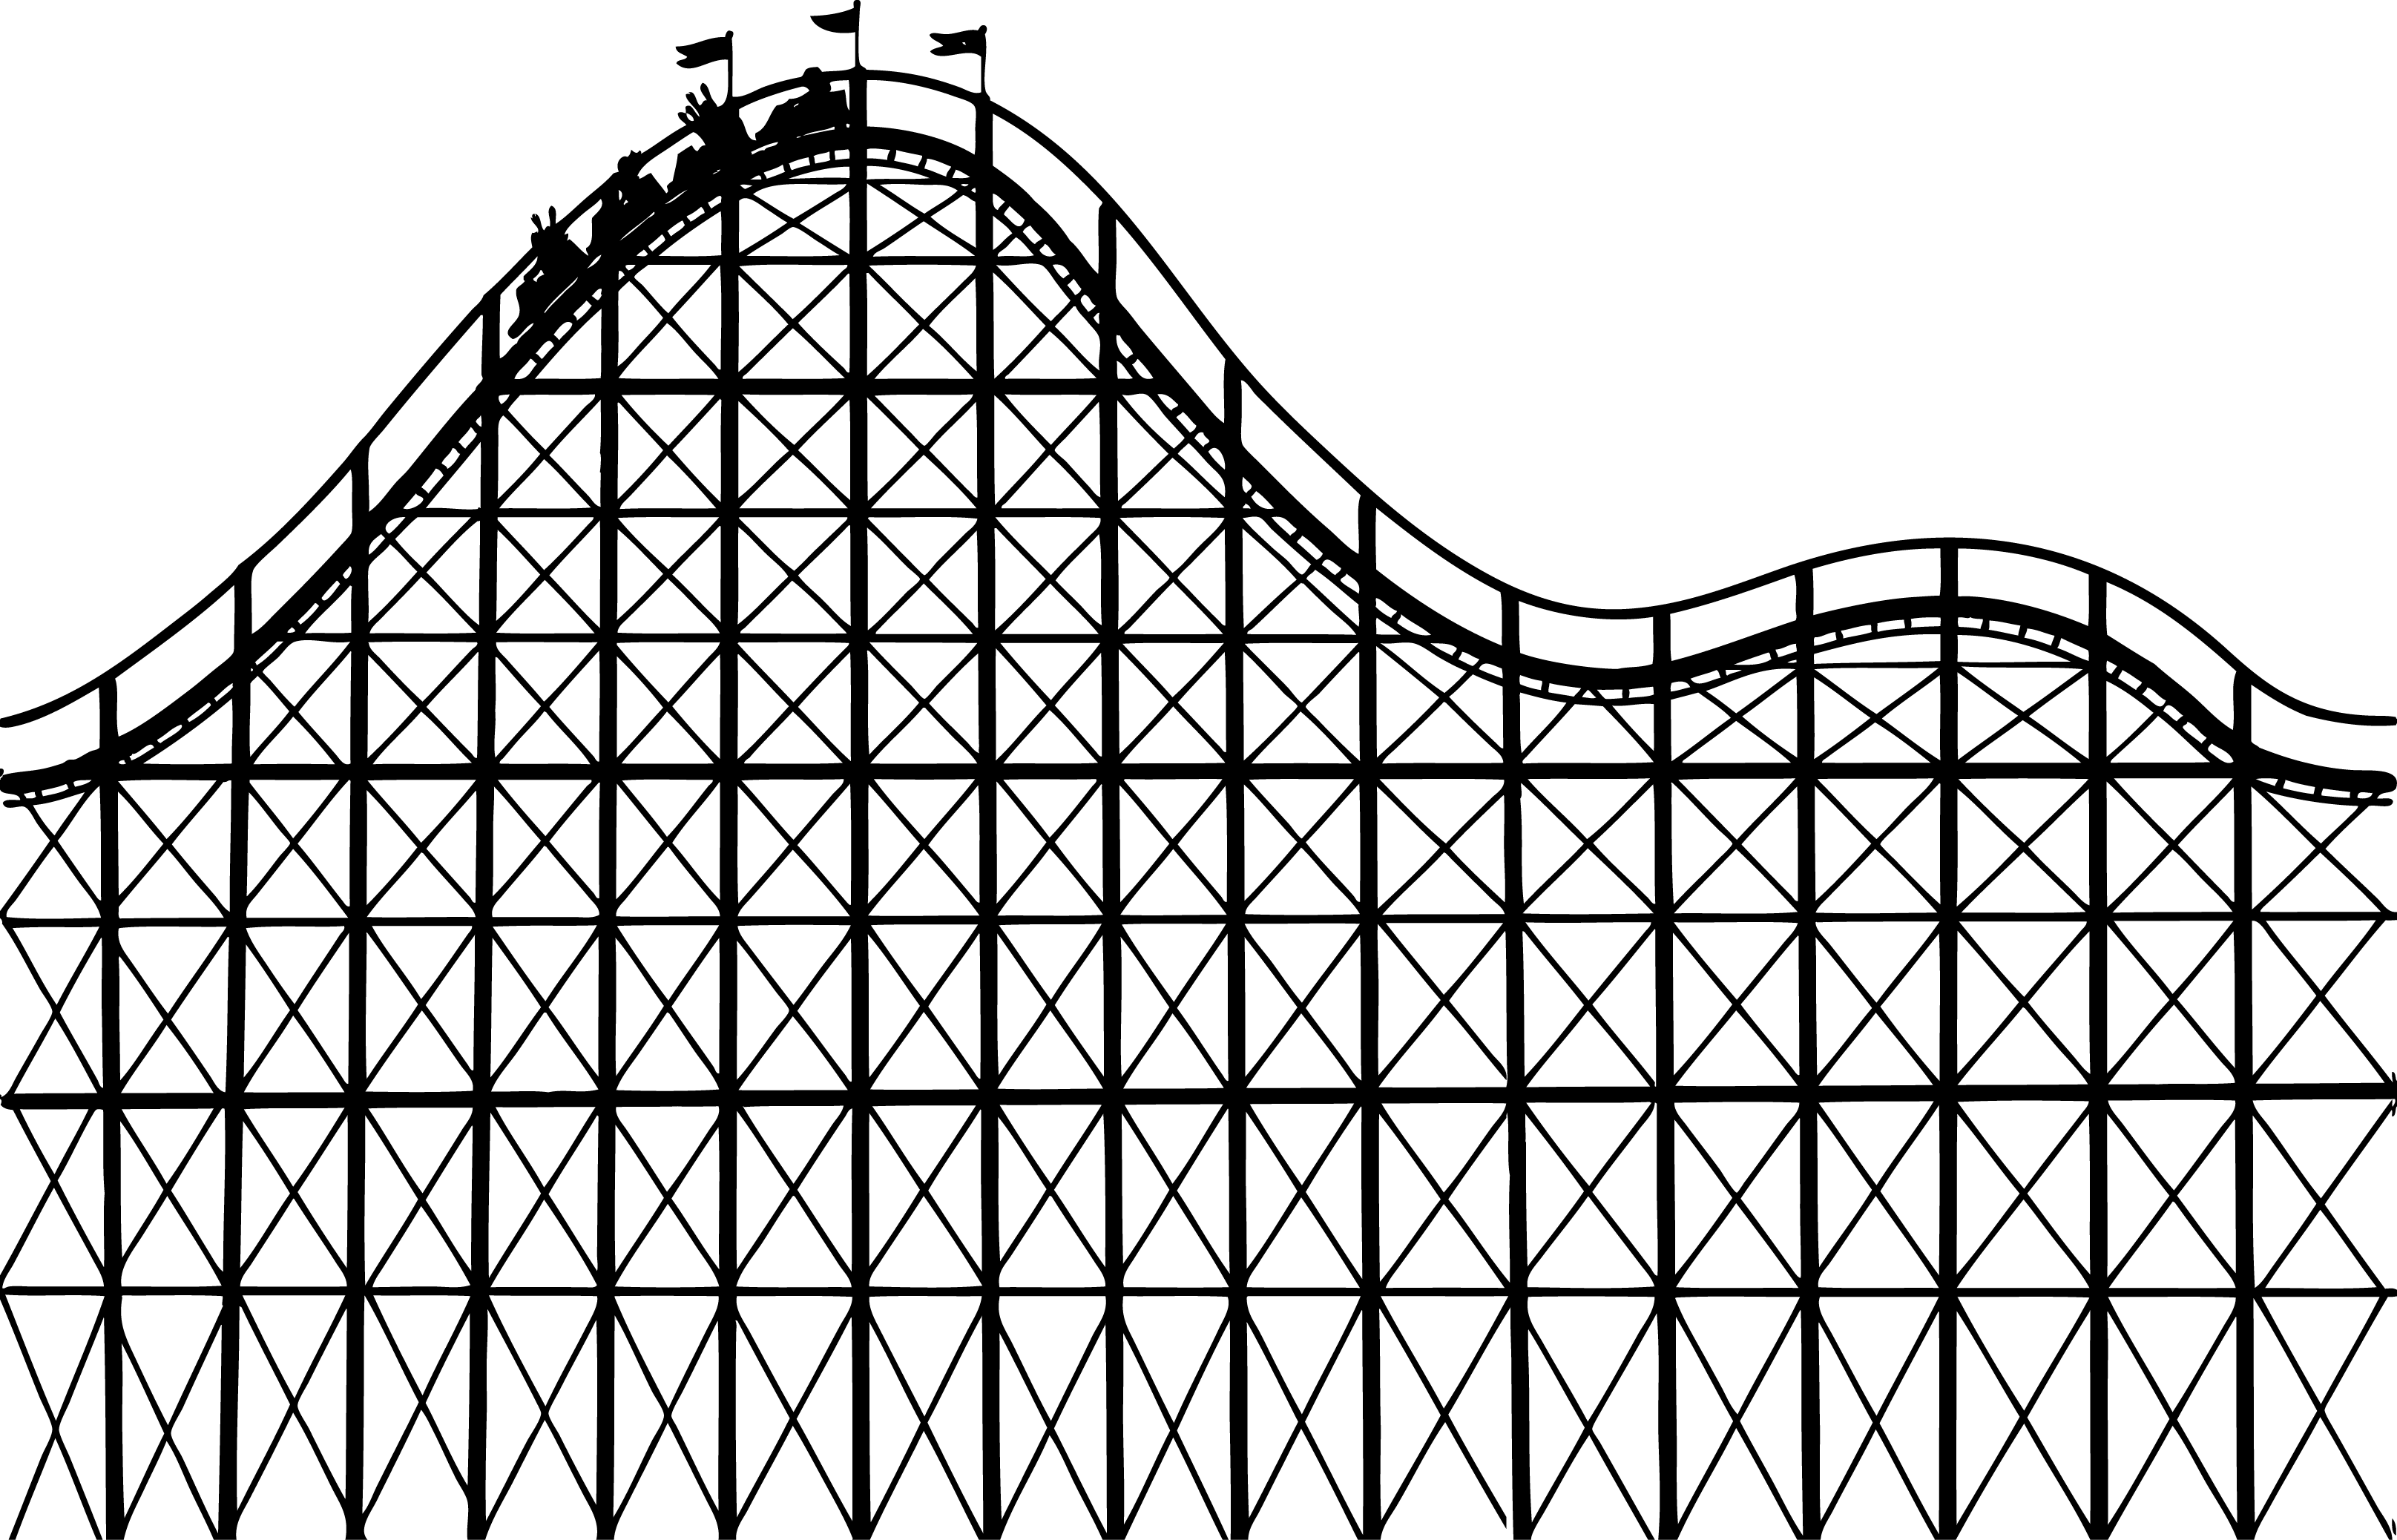 Rollercoaster clipart transparent background. Download roller coaster free